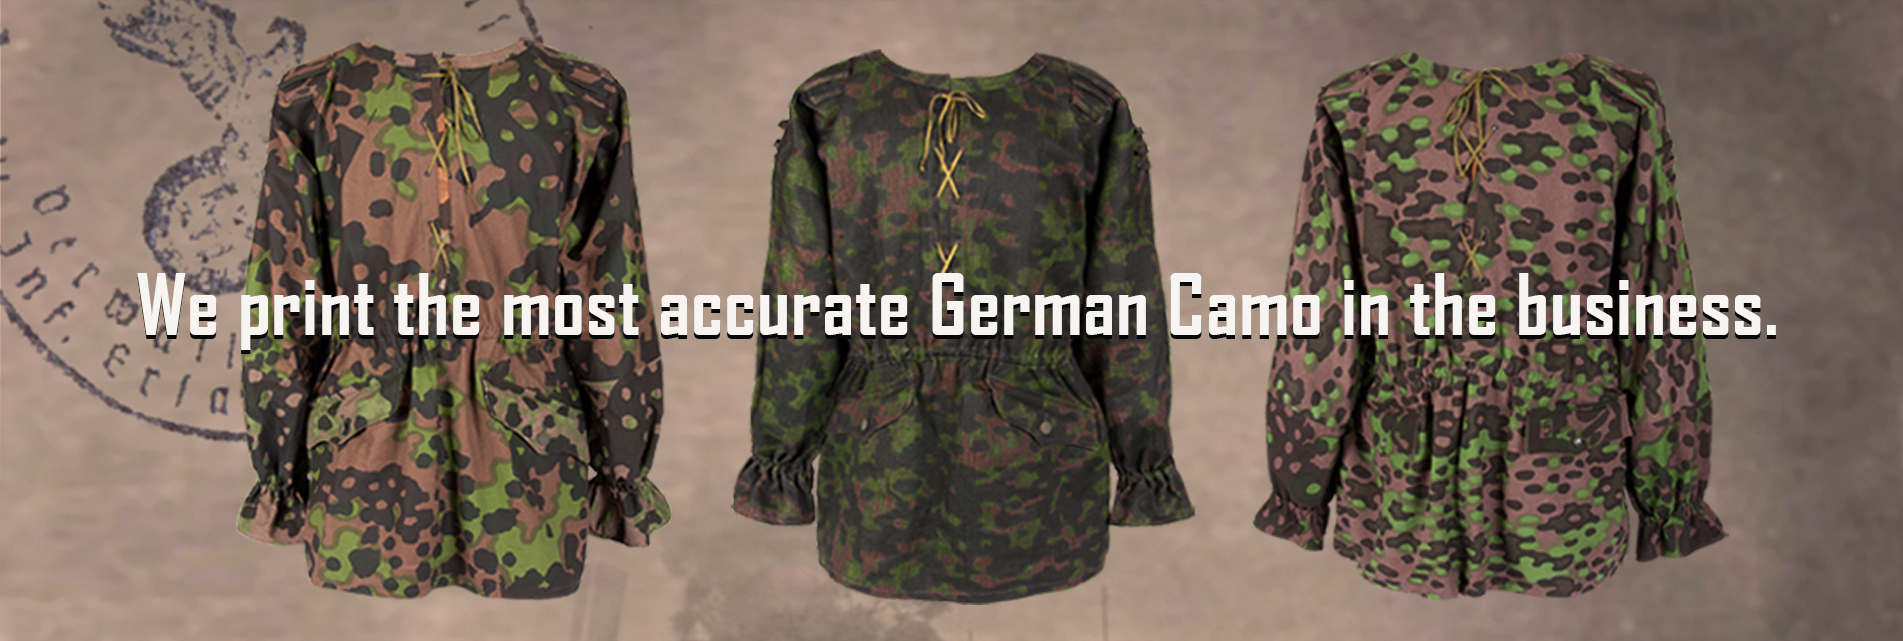 Best German Camo in the business.